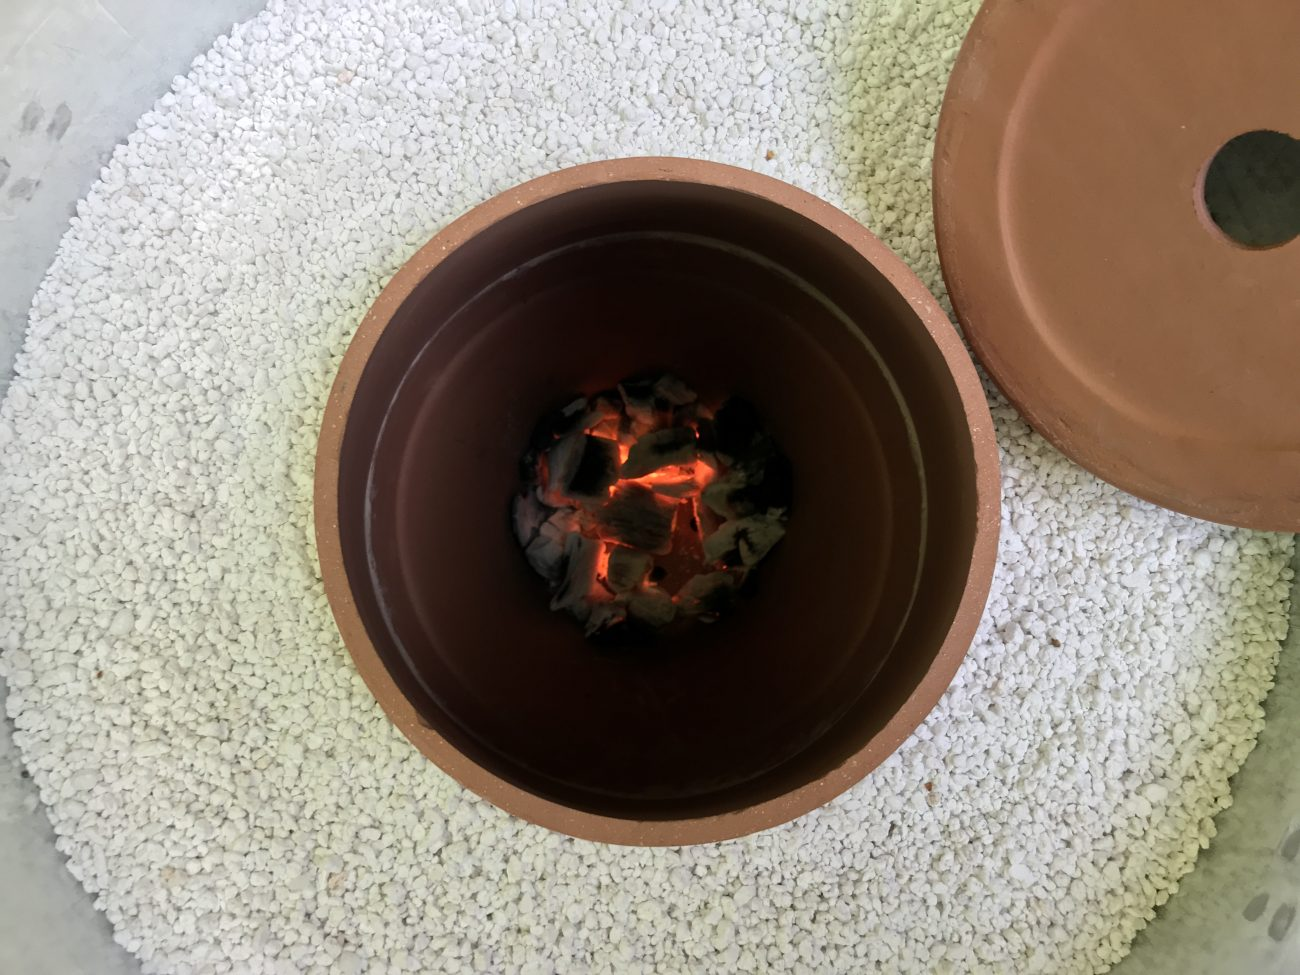 How to build a tandoor oven at home